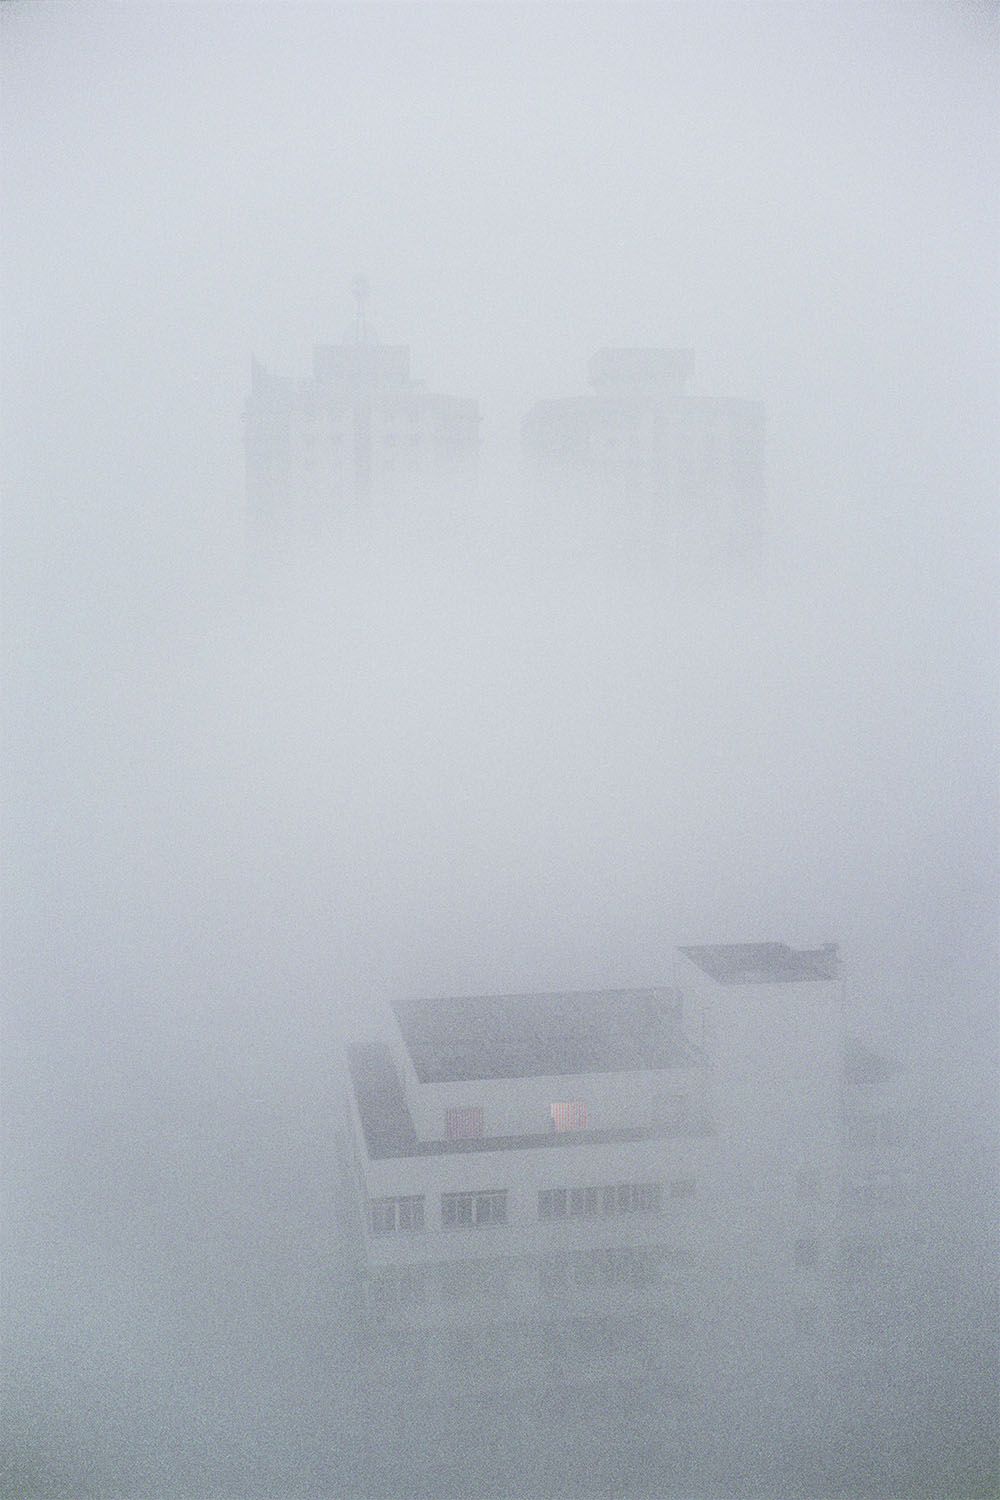 New construction higher up on the hills of the Yangtze River. The buildings are surrounded by a heavy fog. Chongqing, China. 2000.